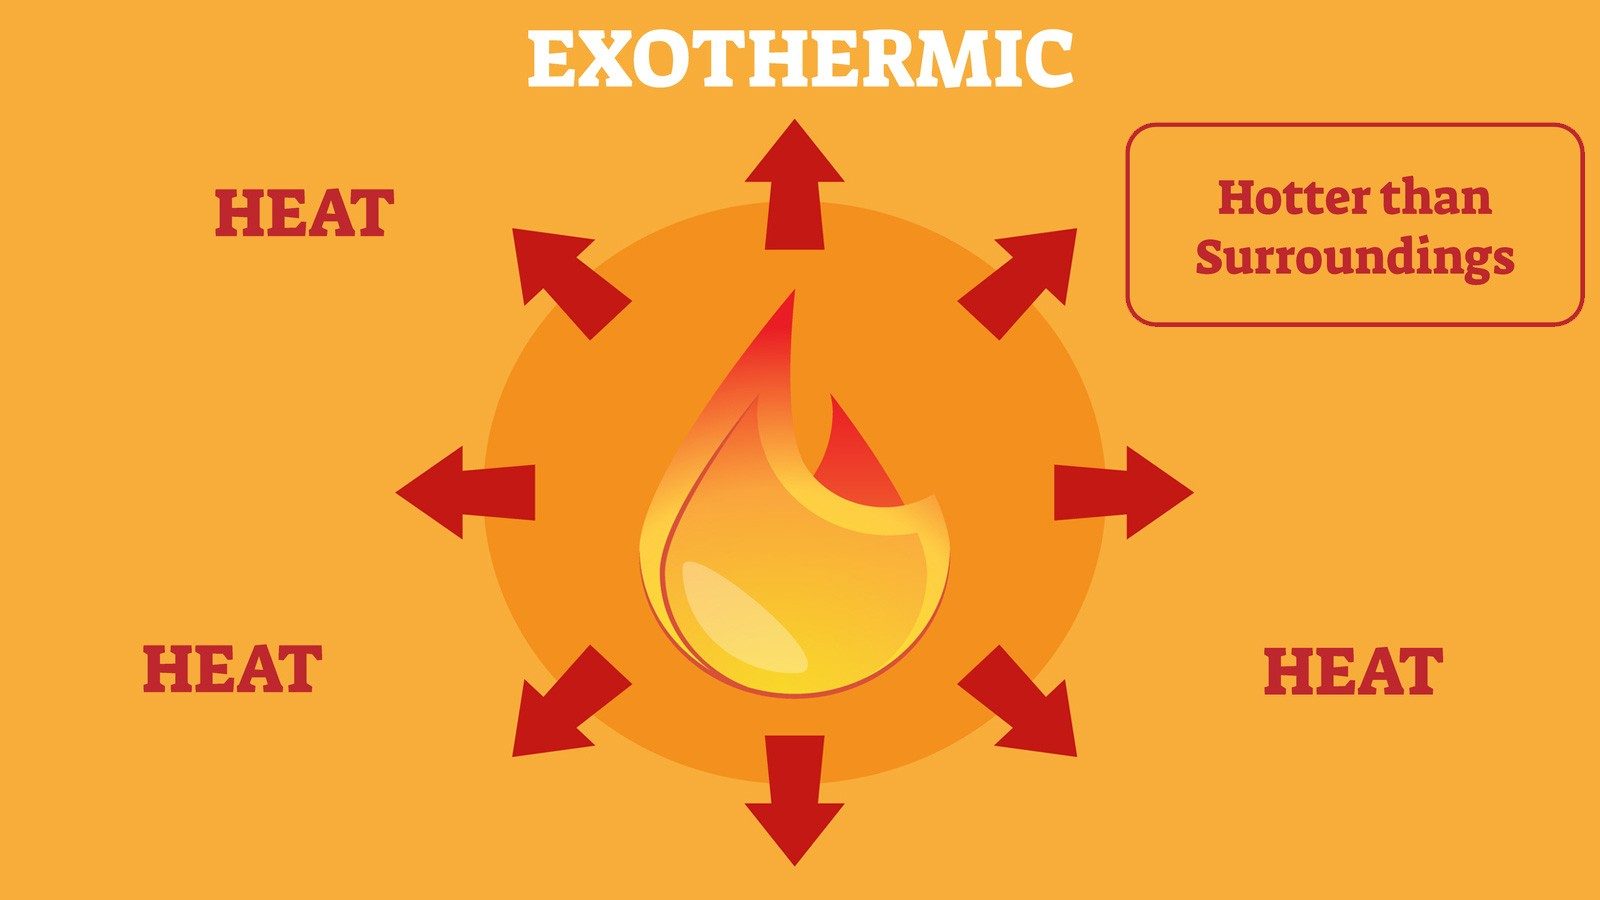 Example of exothermic